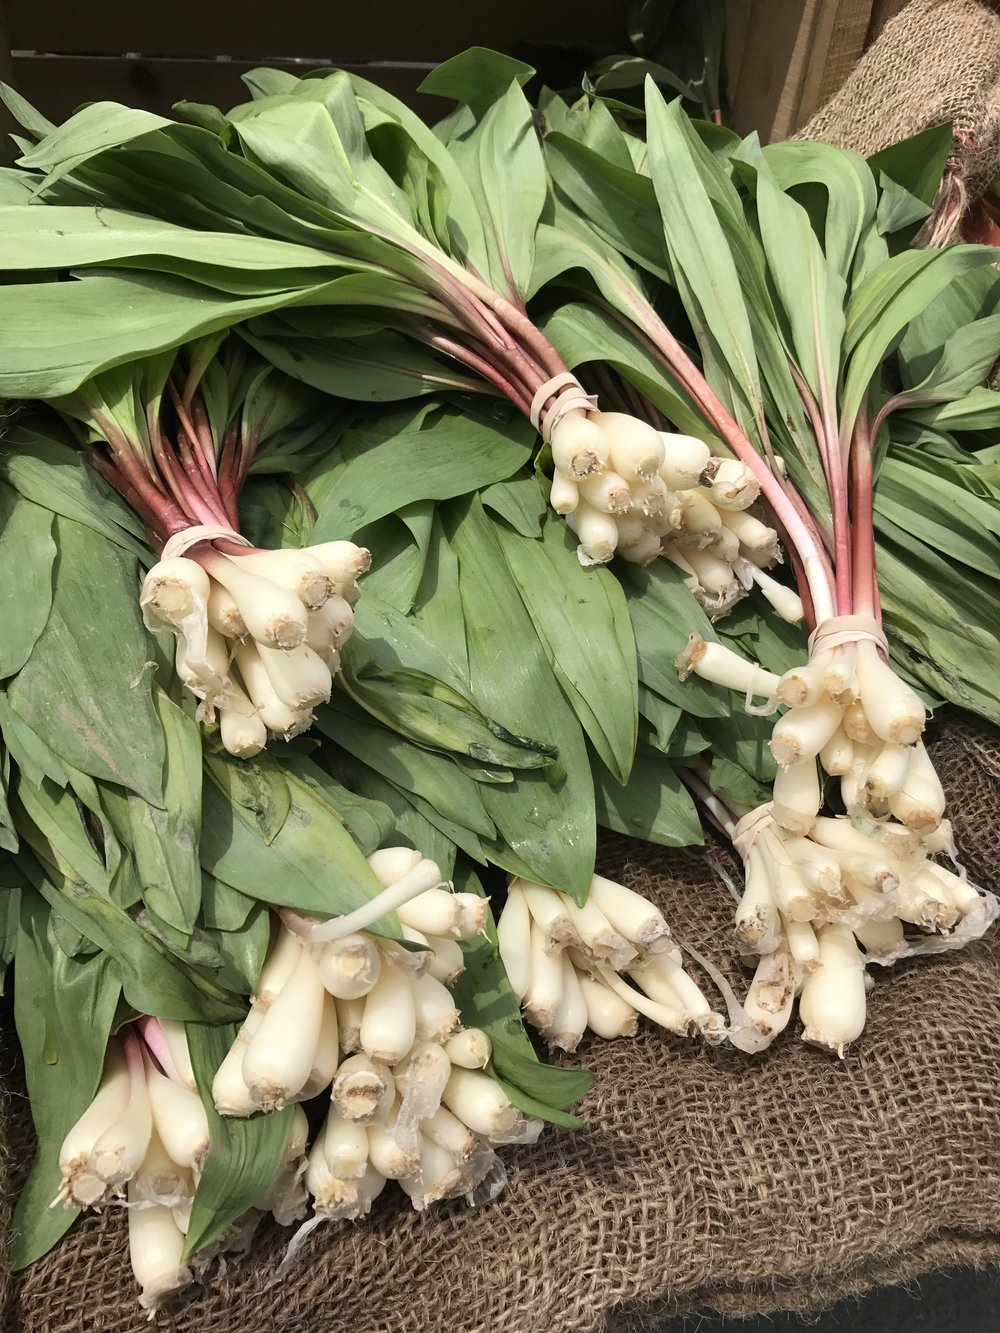 ramps-at-market-e1495121781104.jpg